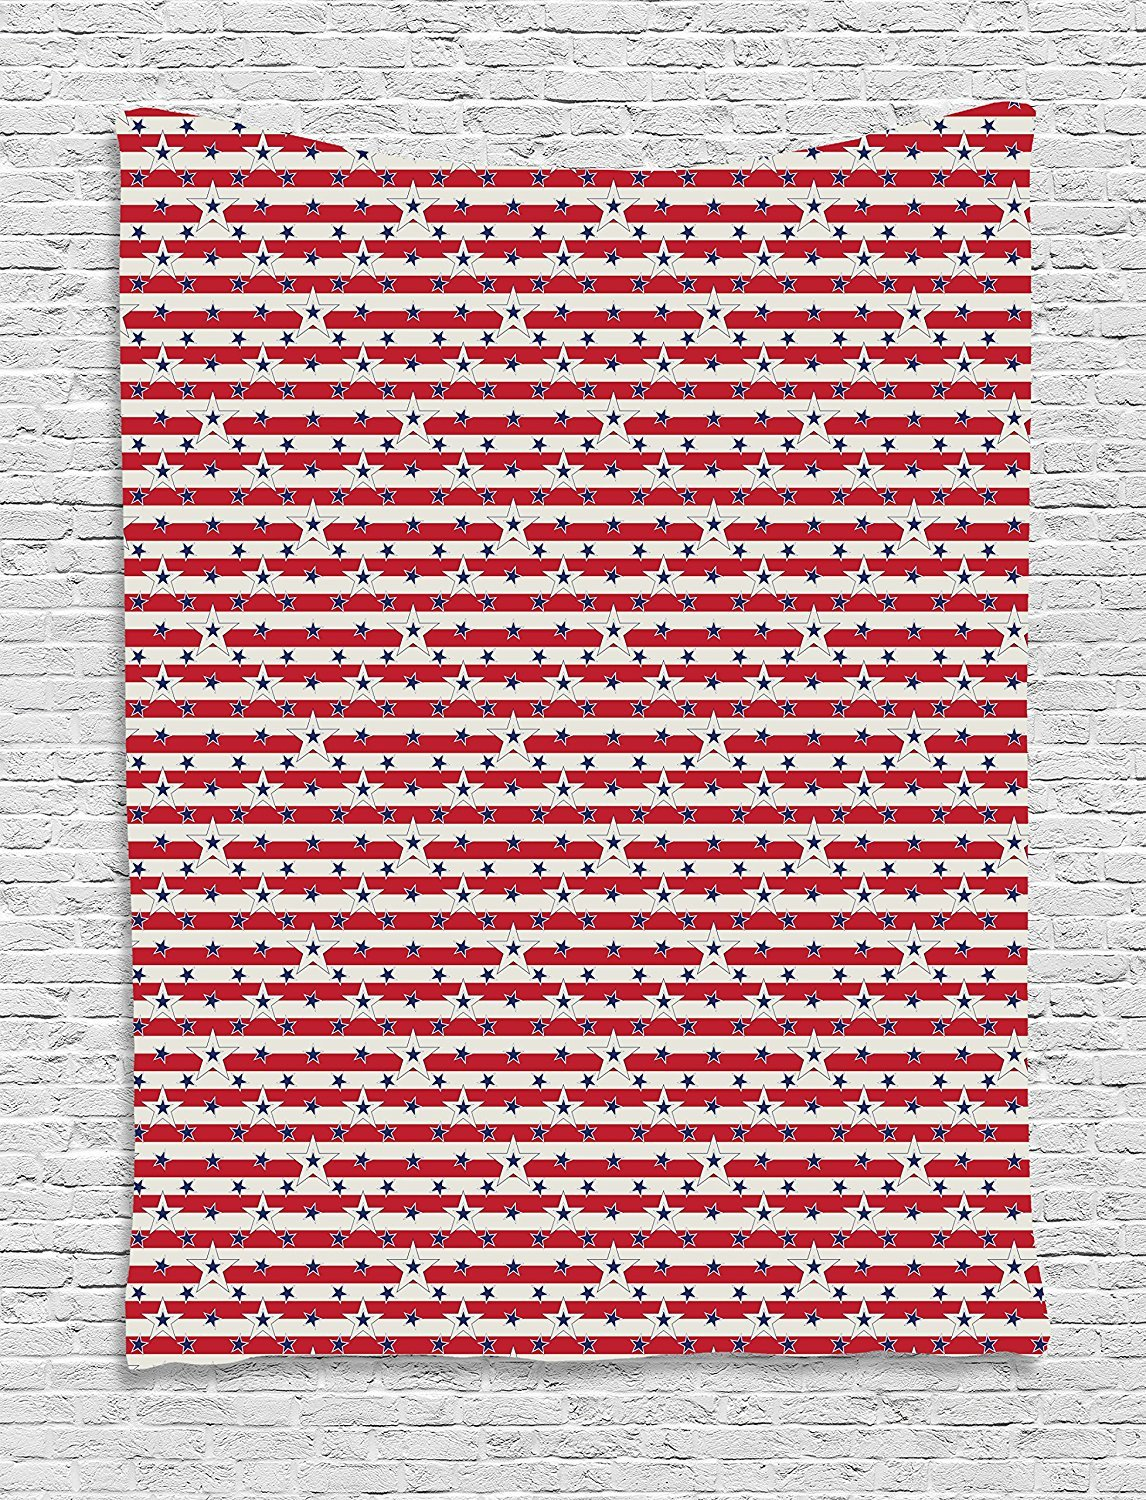 asddcdfdd 4th of July Tapestry, Stripes with Stars Freedom and Liberty of the USA National Holiday, Wall Hanging for Bedroom Living Room Dorm, 60 W X 80 L Inches, Royal Blue Biege Red by asddcdfdd